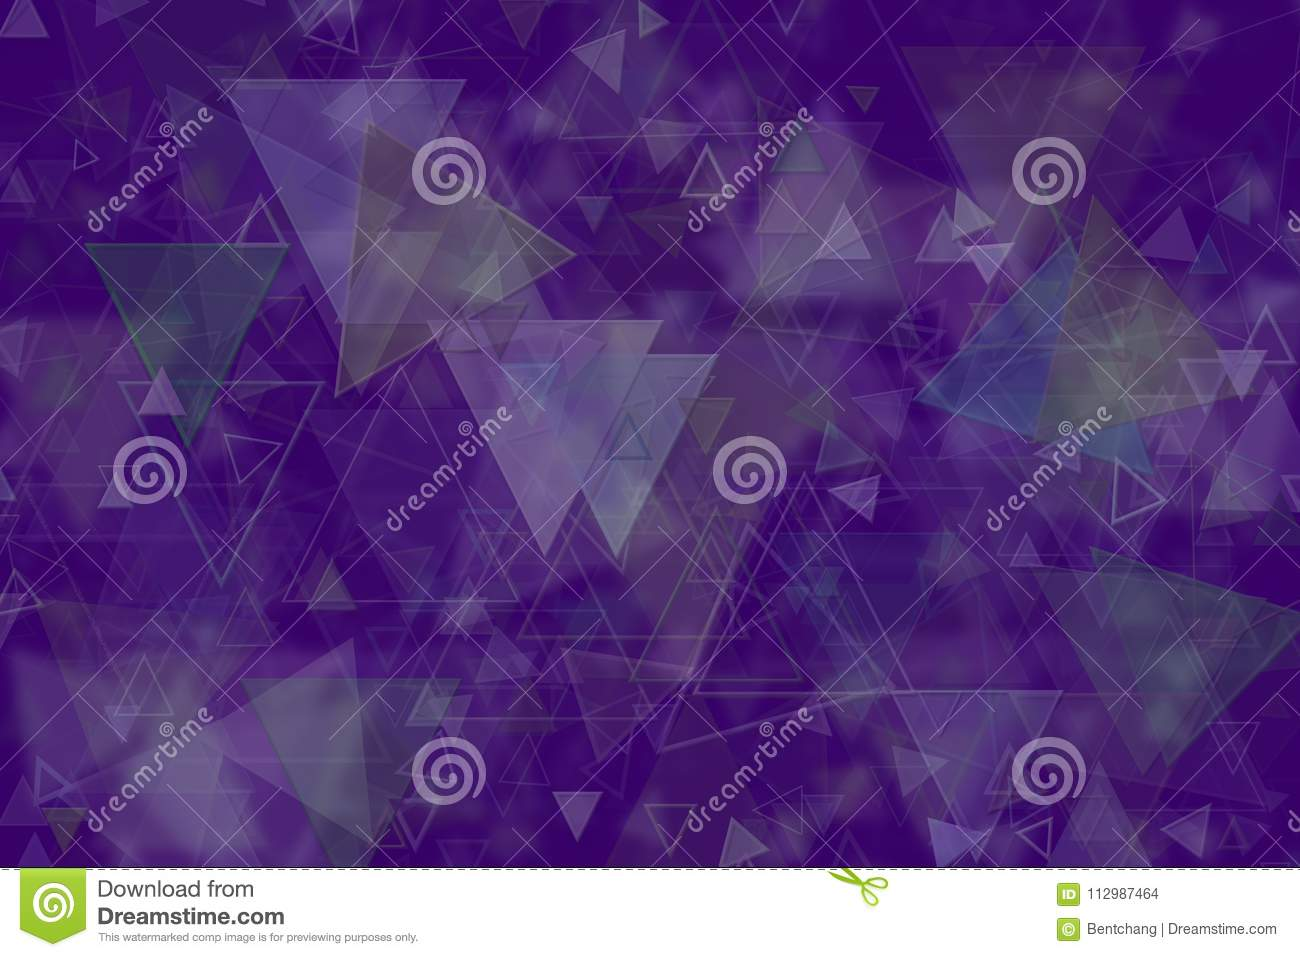 Abstract shape, for web page, wallpaper or graphic design. Pattern, triangle, bubble, effect & painting.